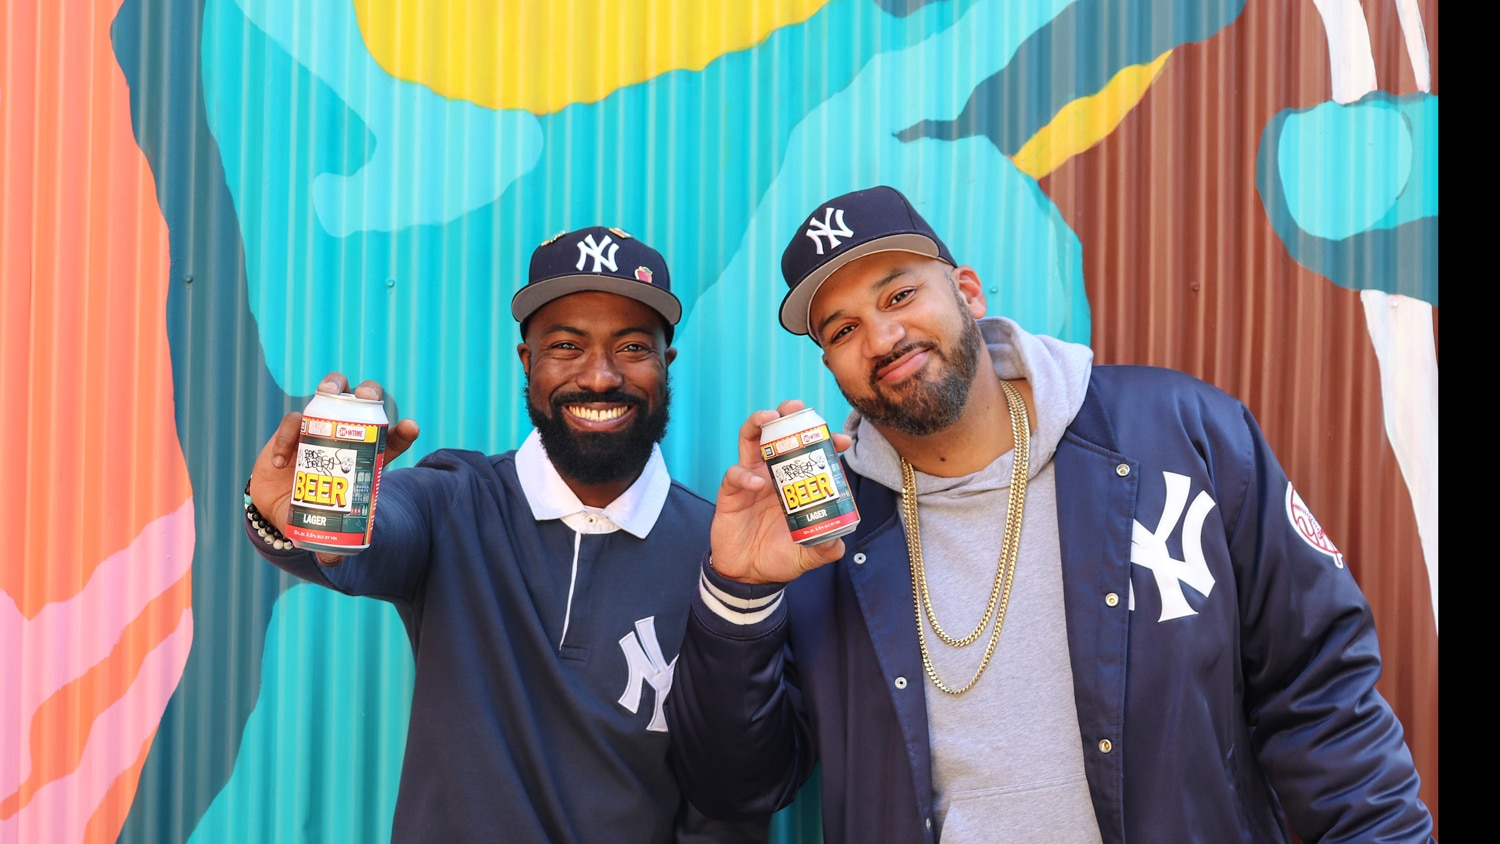 DESUS & MERO® on SHOWTIME® and THE BRONX BREWERY ANNOUNCE THE LAUNCH OF 'BODEGA BOYS BEER'